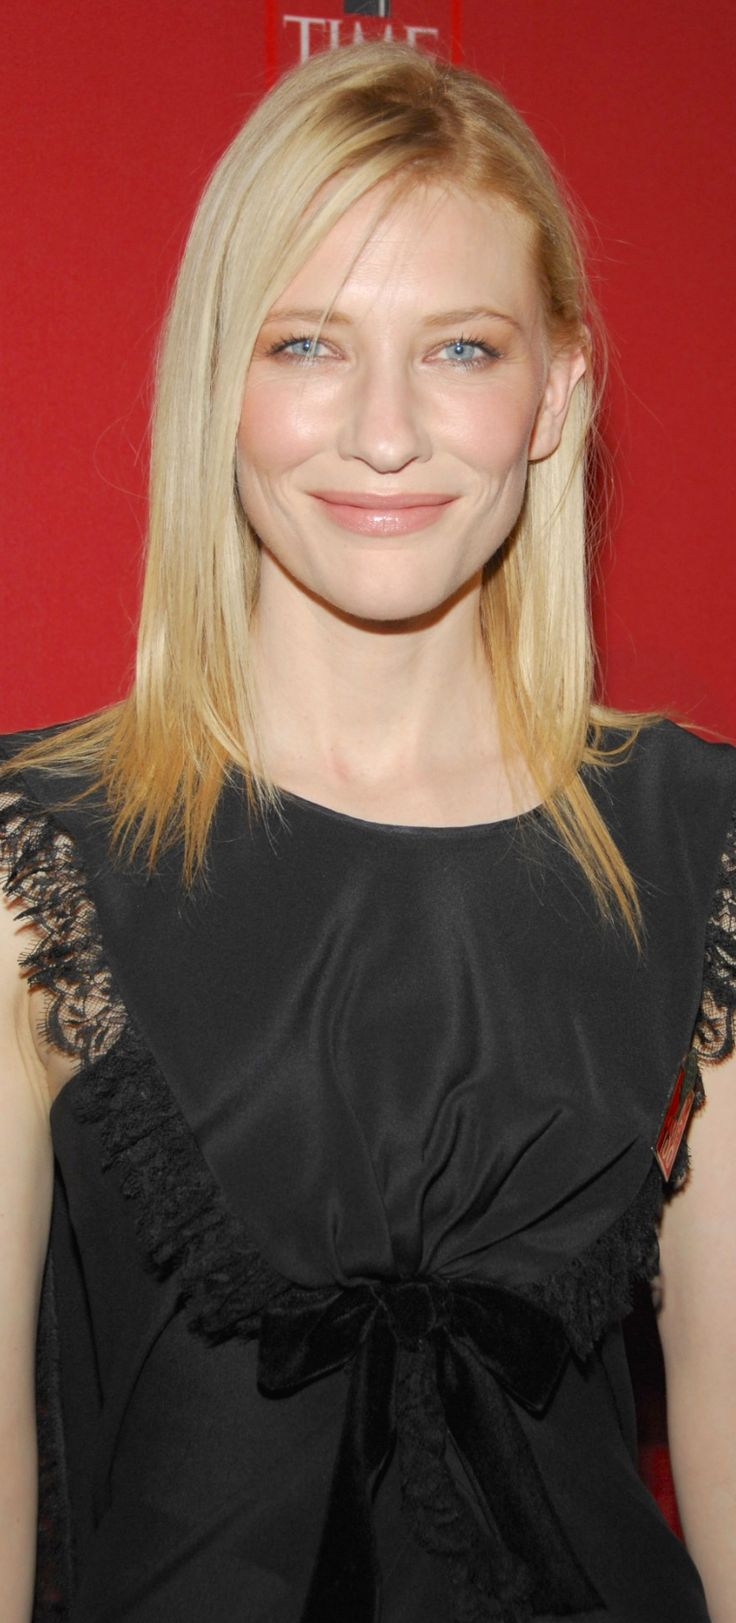 696 best images about Cate Blanchett on Pinterest Cate Blanchett